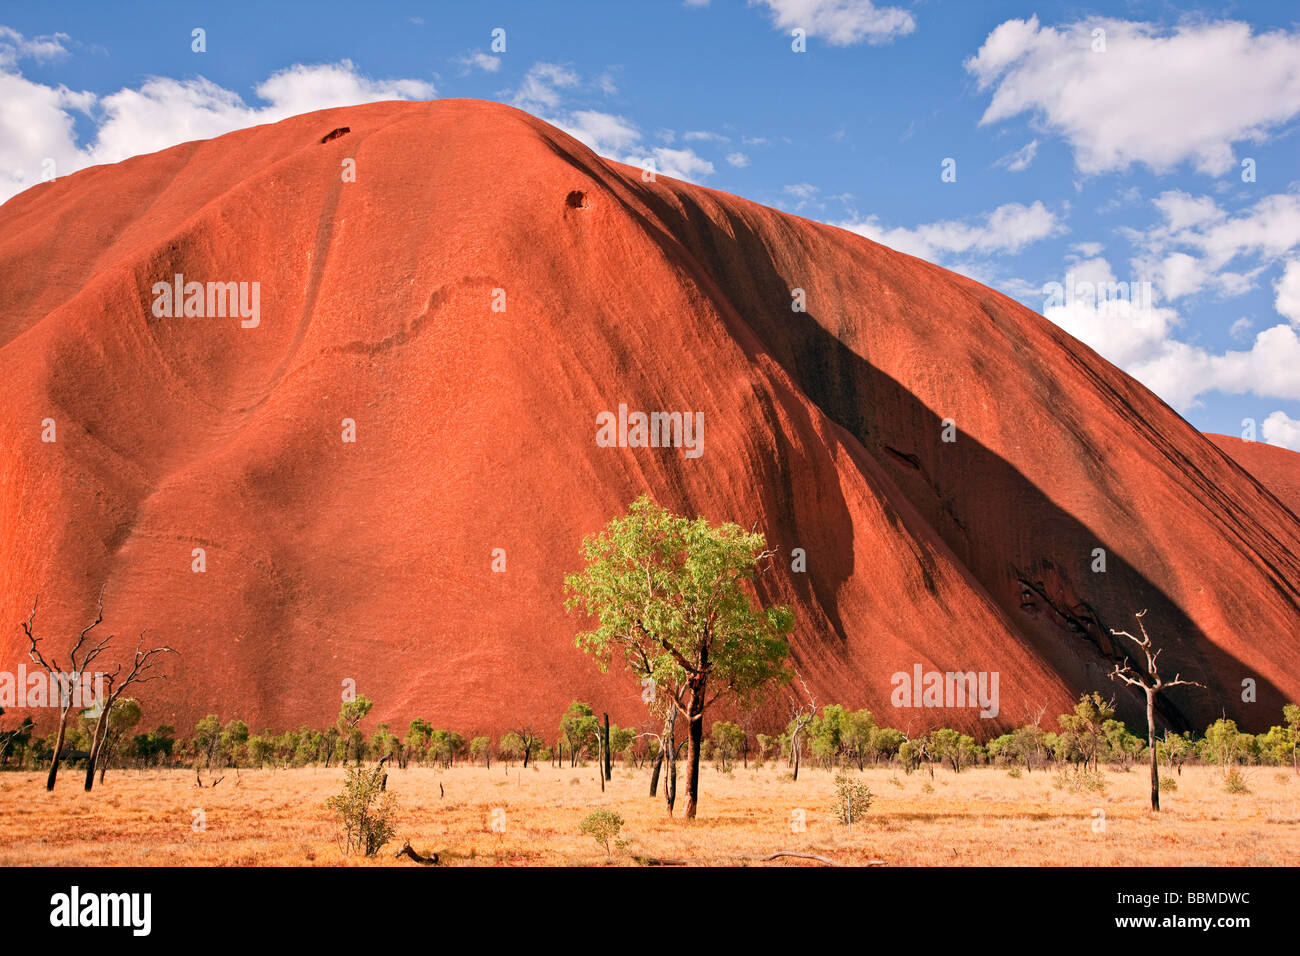 Australia, Northern Territory. Uluru or Ayres Rock, a huge sandstone rock formation. One of the most recognized - Stock Image